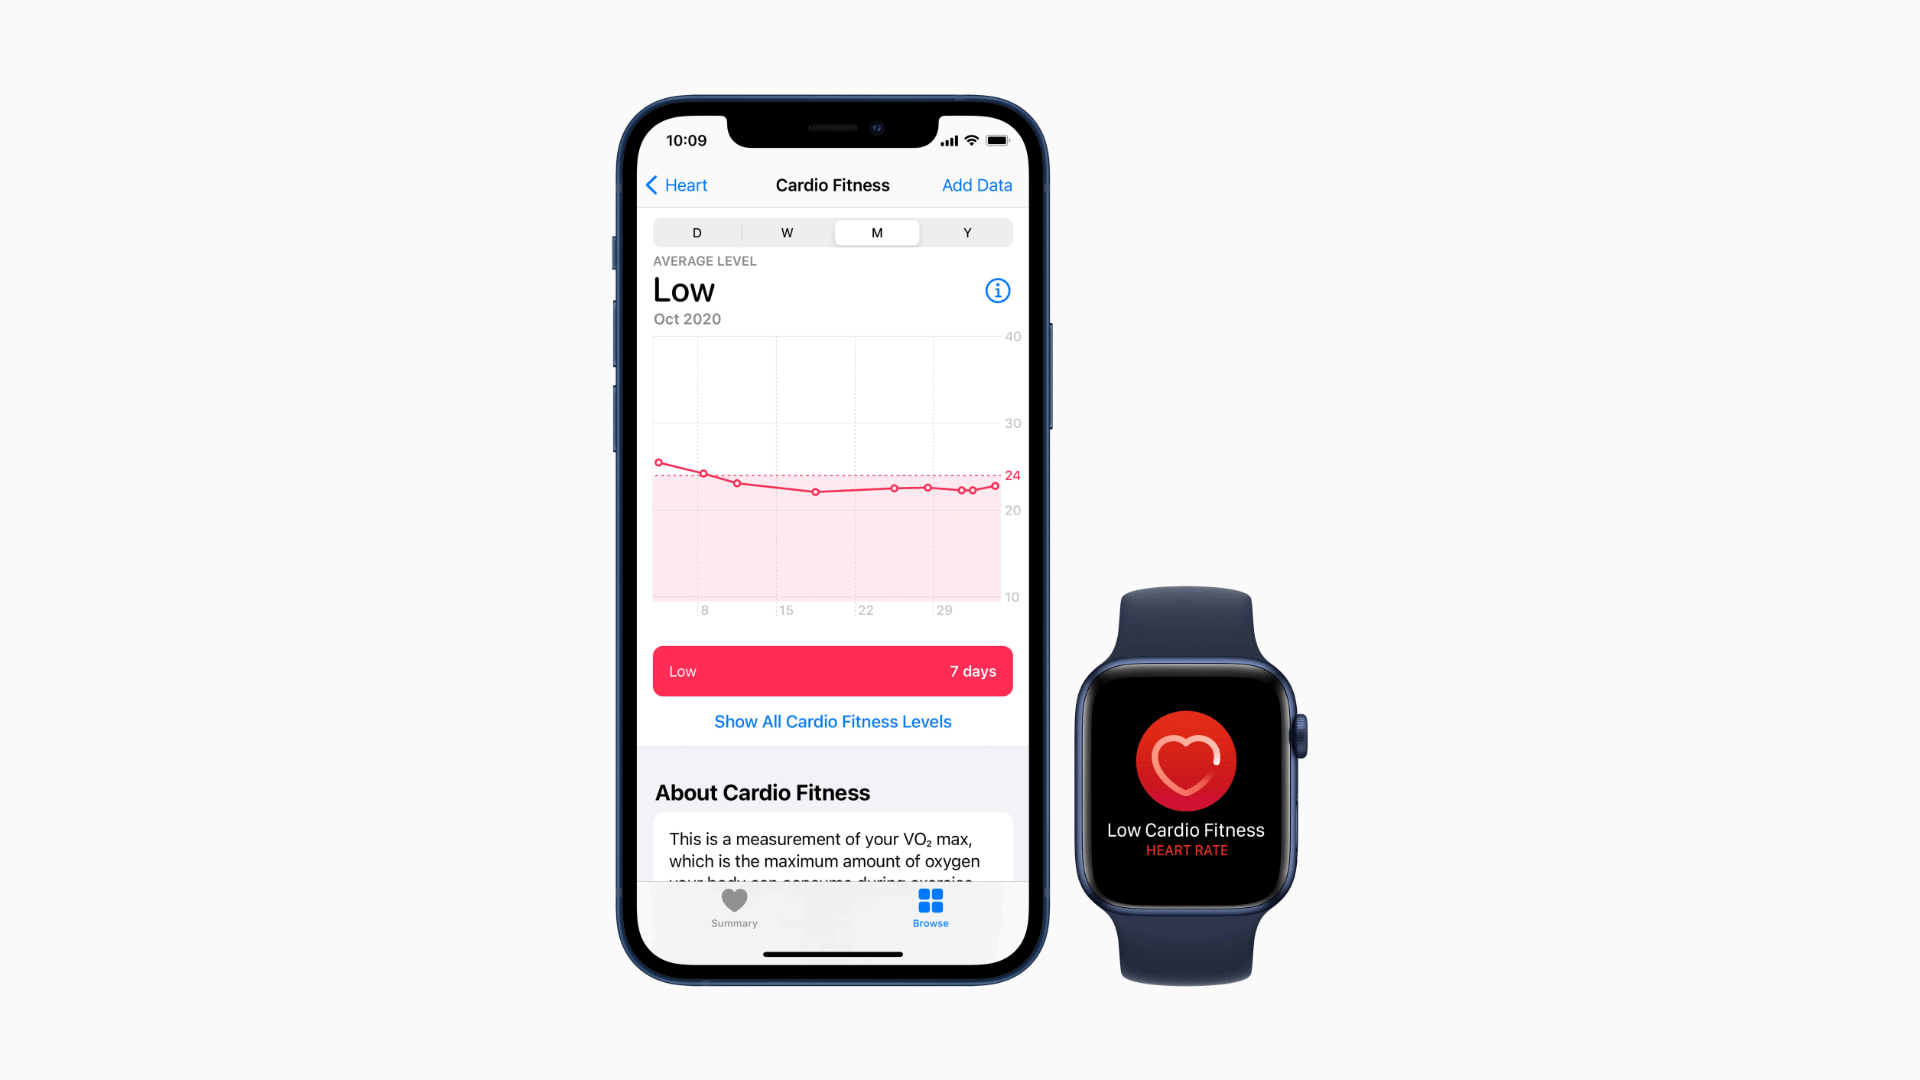 Apple release Cardio fitness notifications for Apple Watch